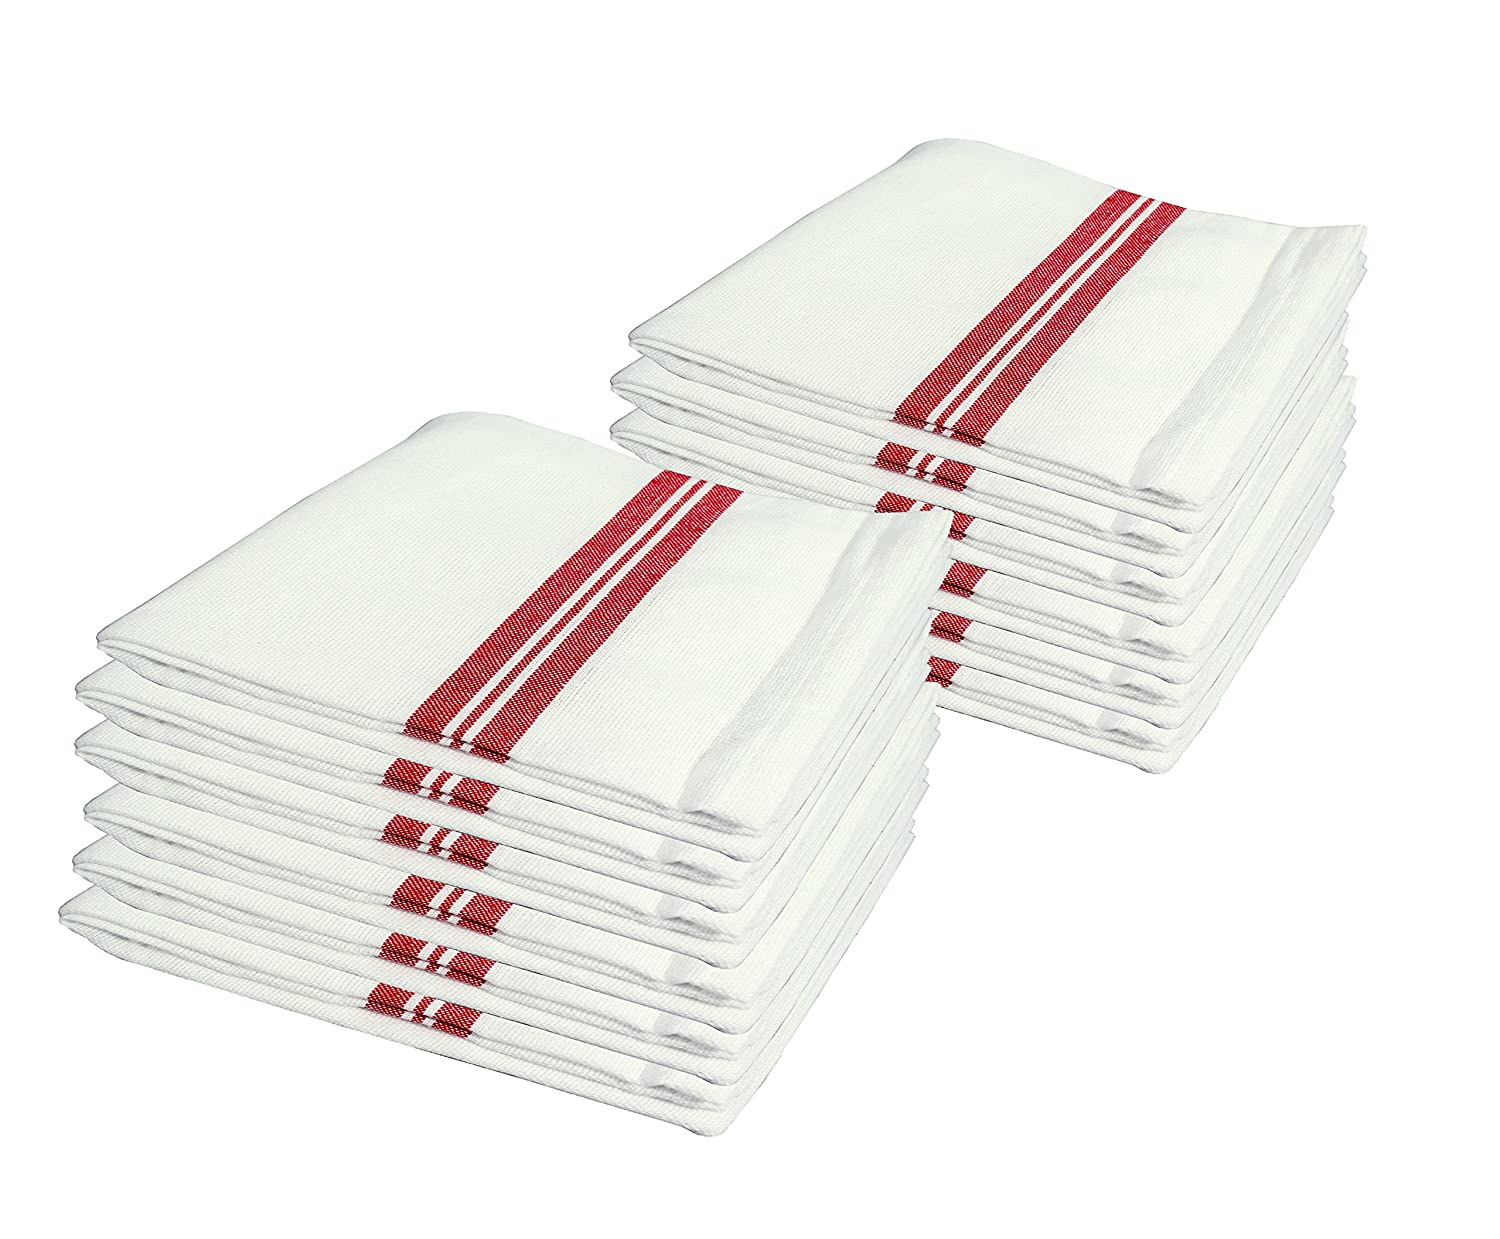 Cotton Kitchen Towels, Set of 12 Towels(16.5 inx26.5in) White Kitchen Towels, Dish Towels Selinz